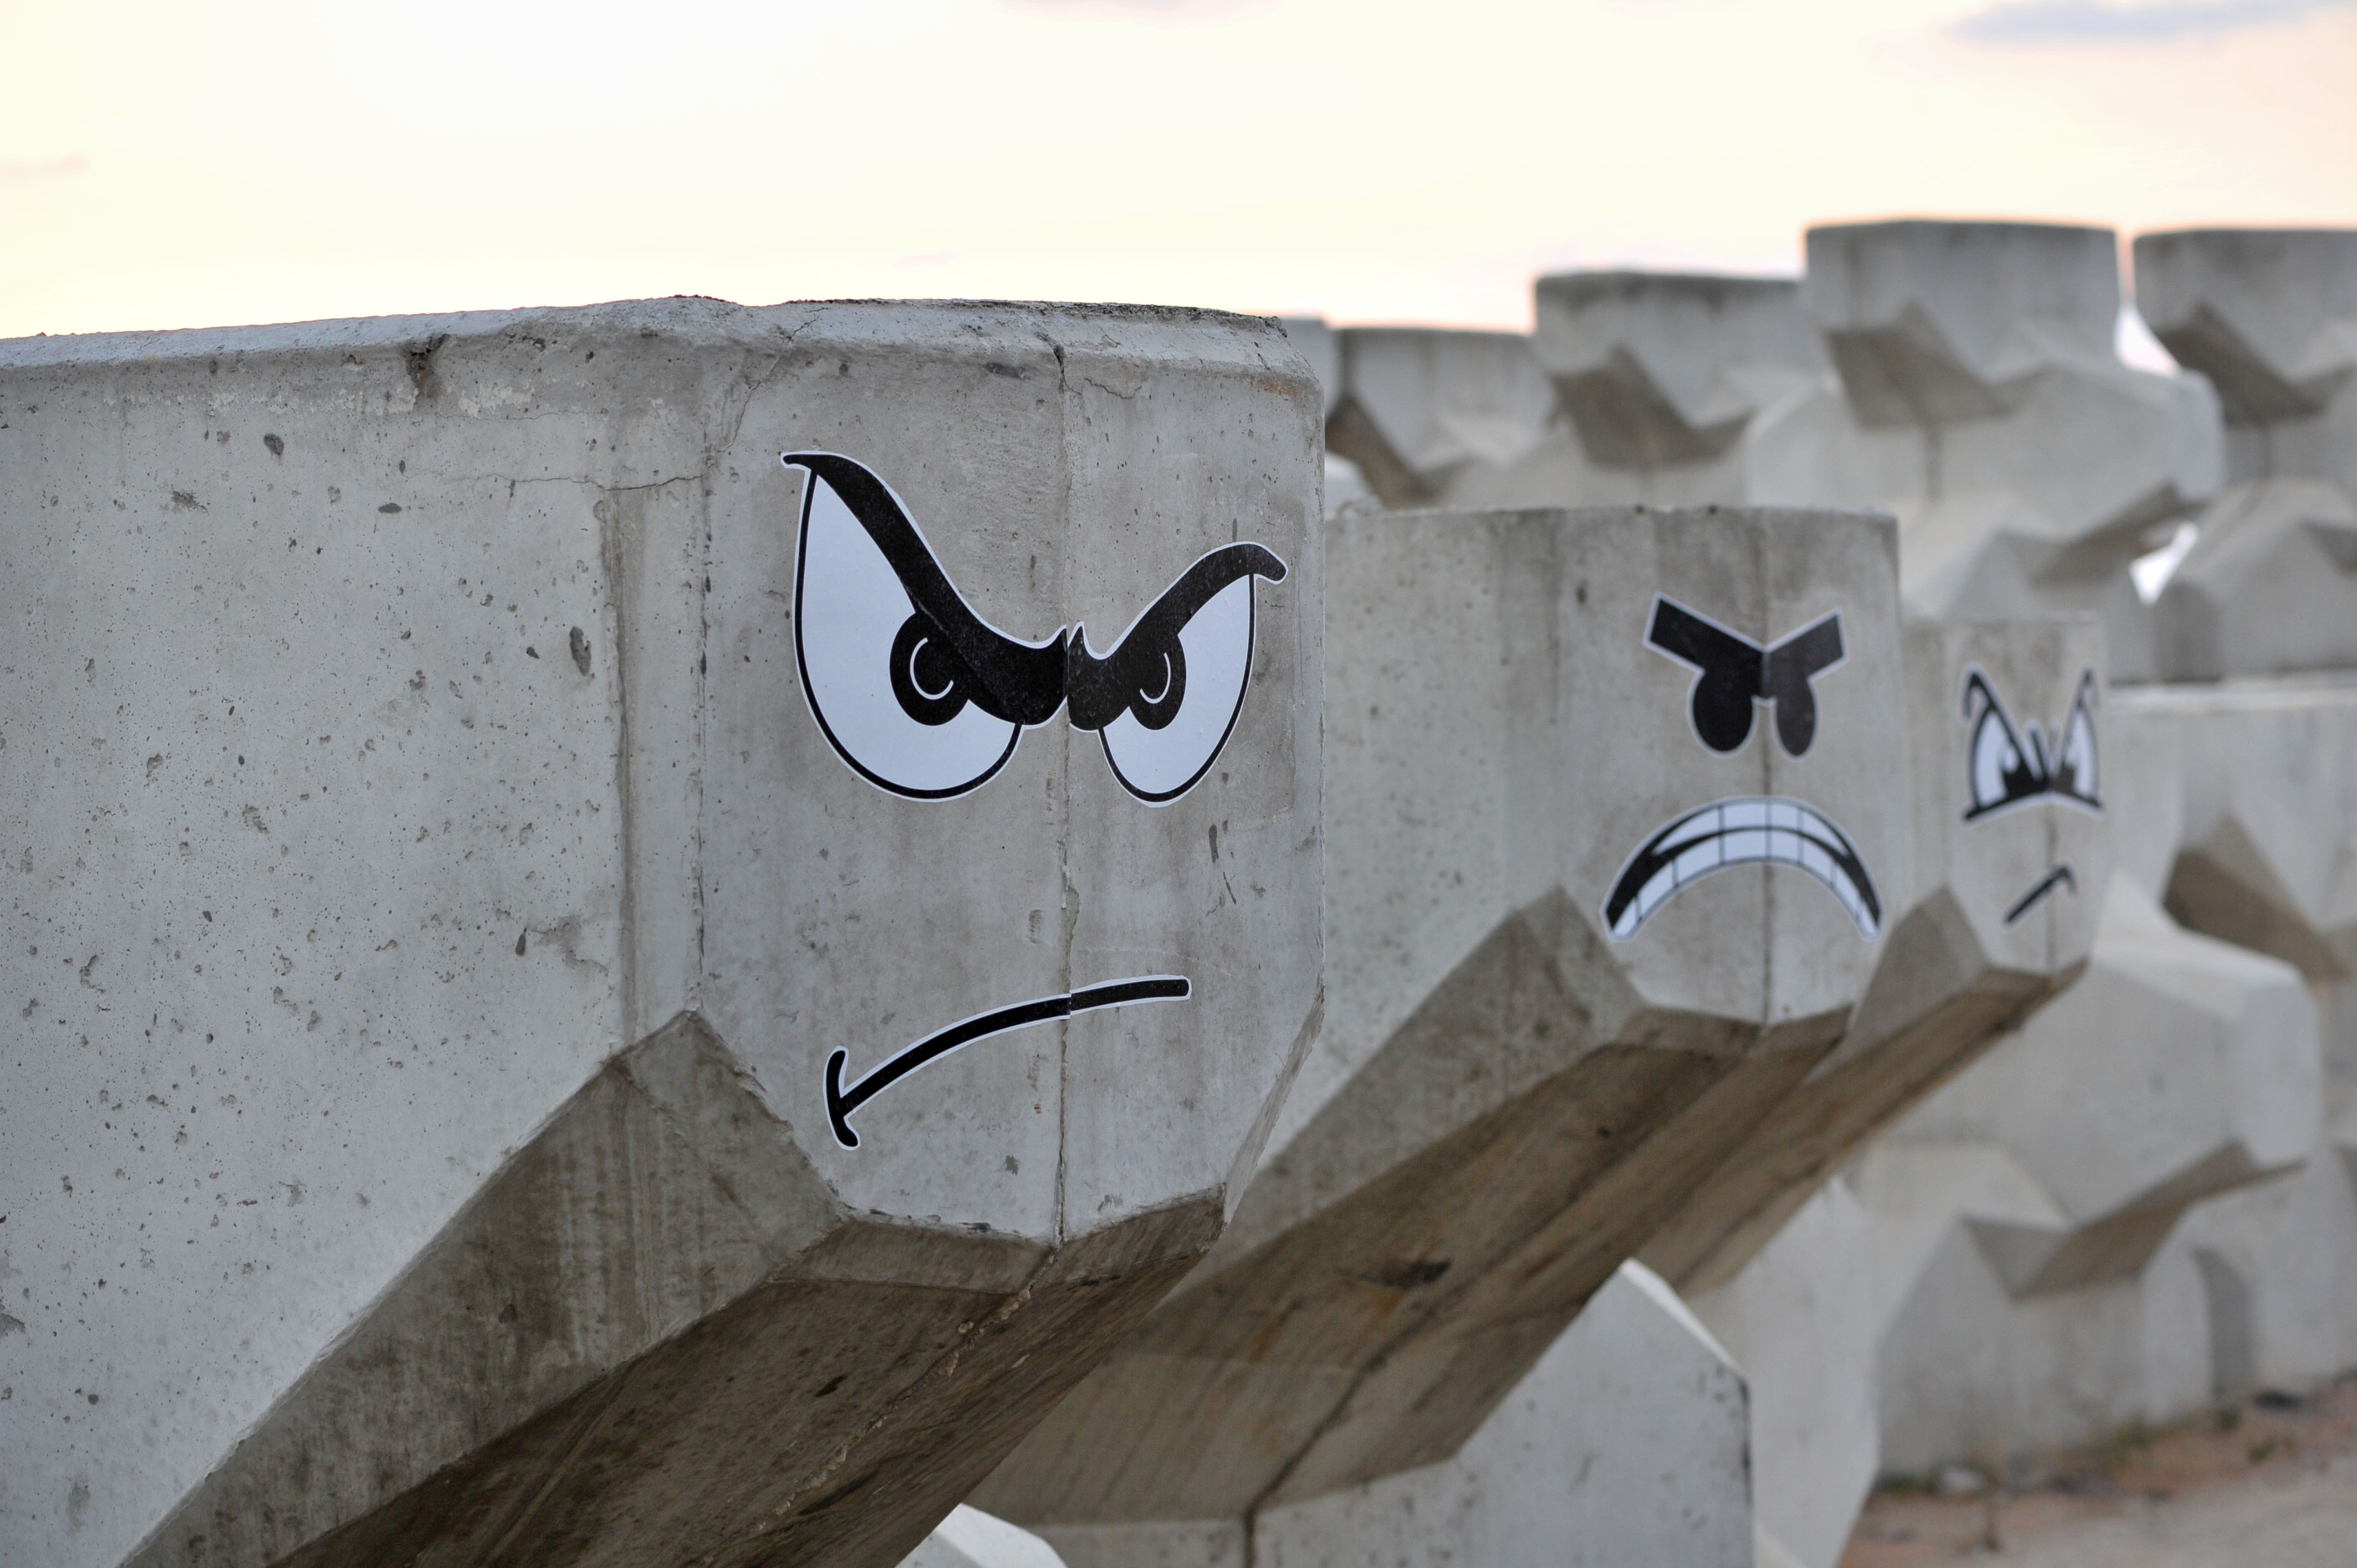 Angry faces are painted on port construction material.